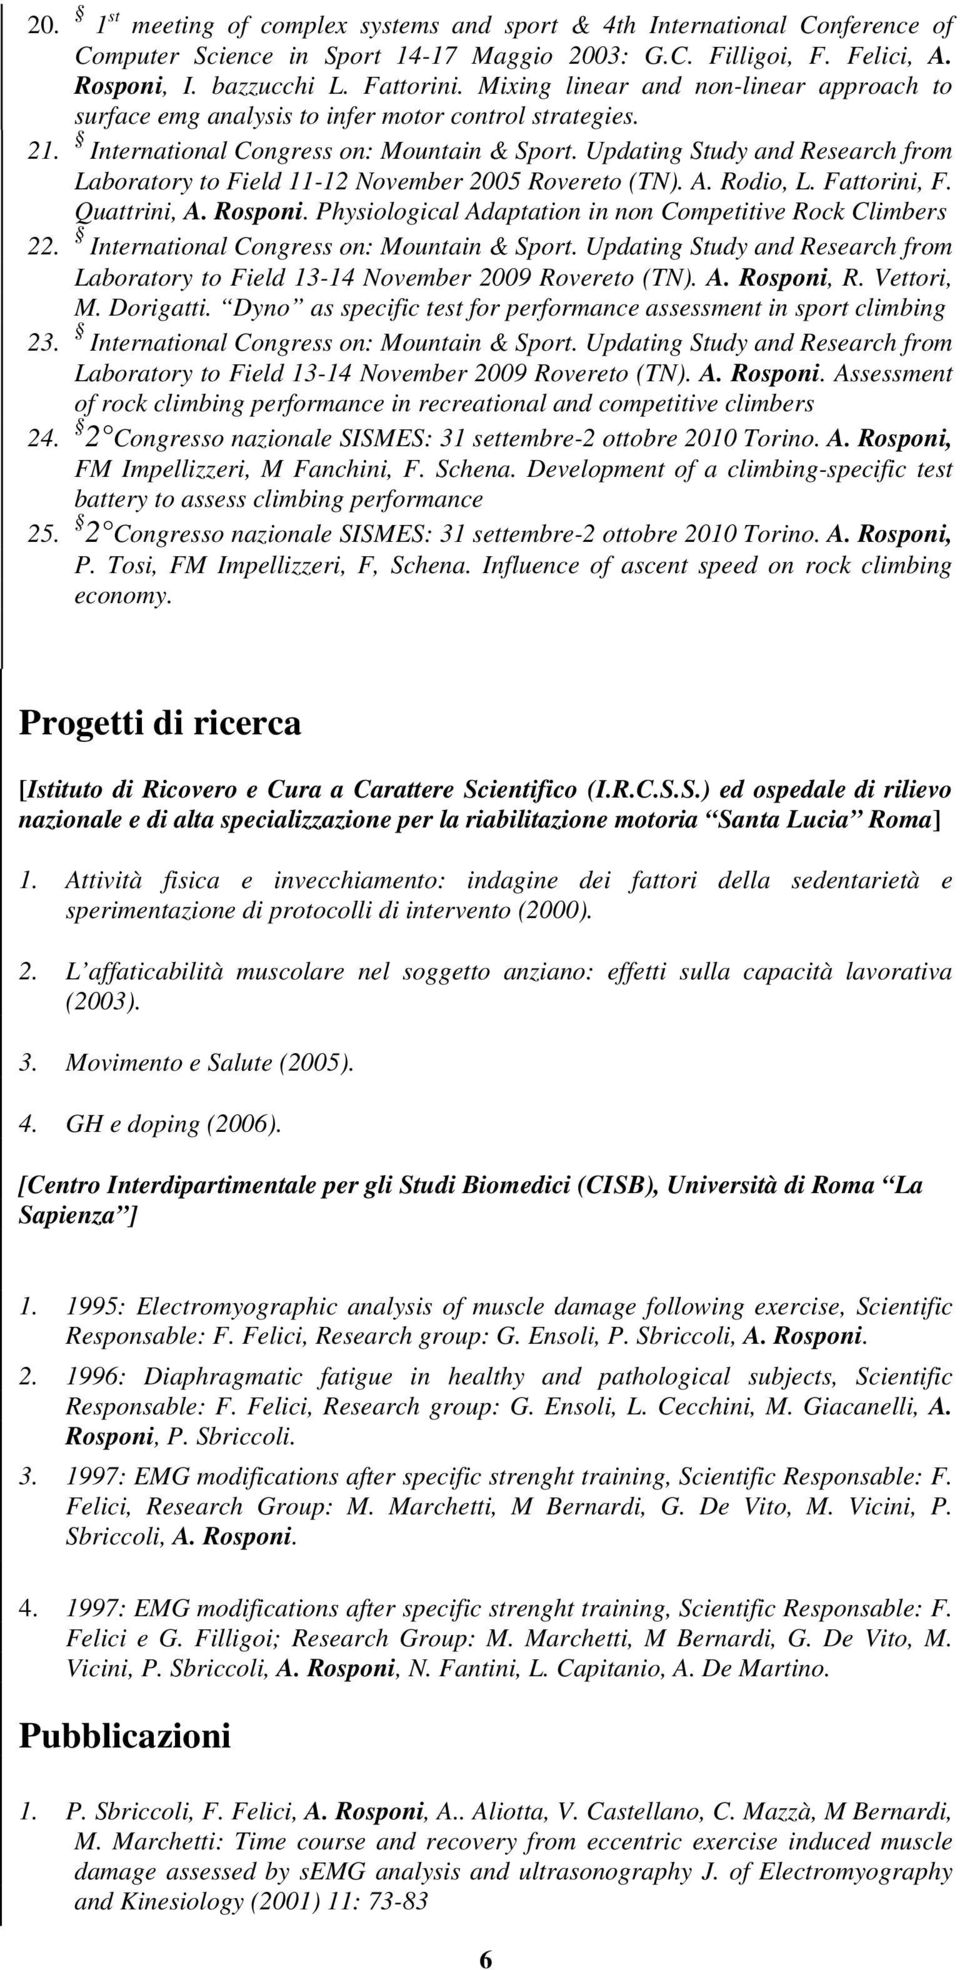 Updating Study and Research from Laboratory to Field 11-12 November 2005 Rovereto (TN). A. Rodio, L. Fattorini, F. Quattrini, A. Rosponi. Physiological Adaptation in non Competitive Rock Climbers 22.